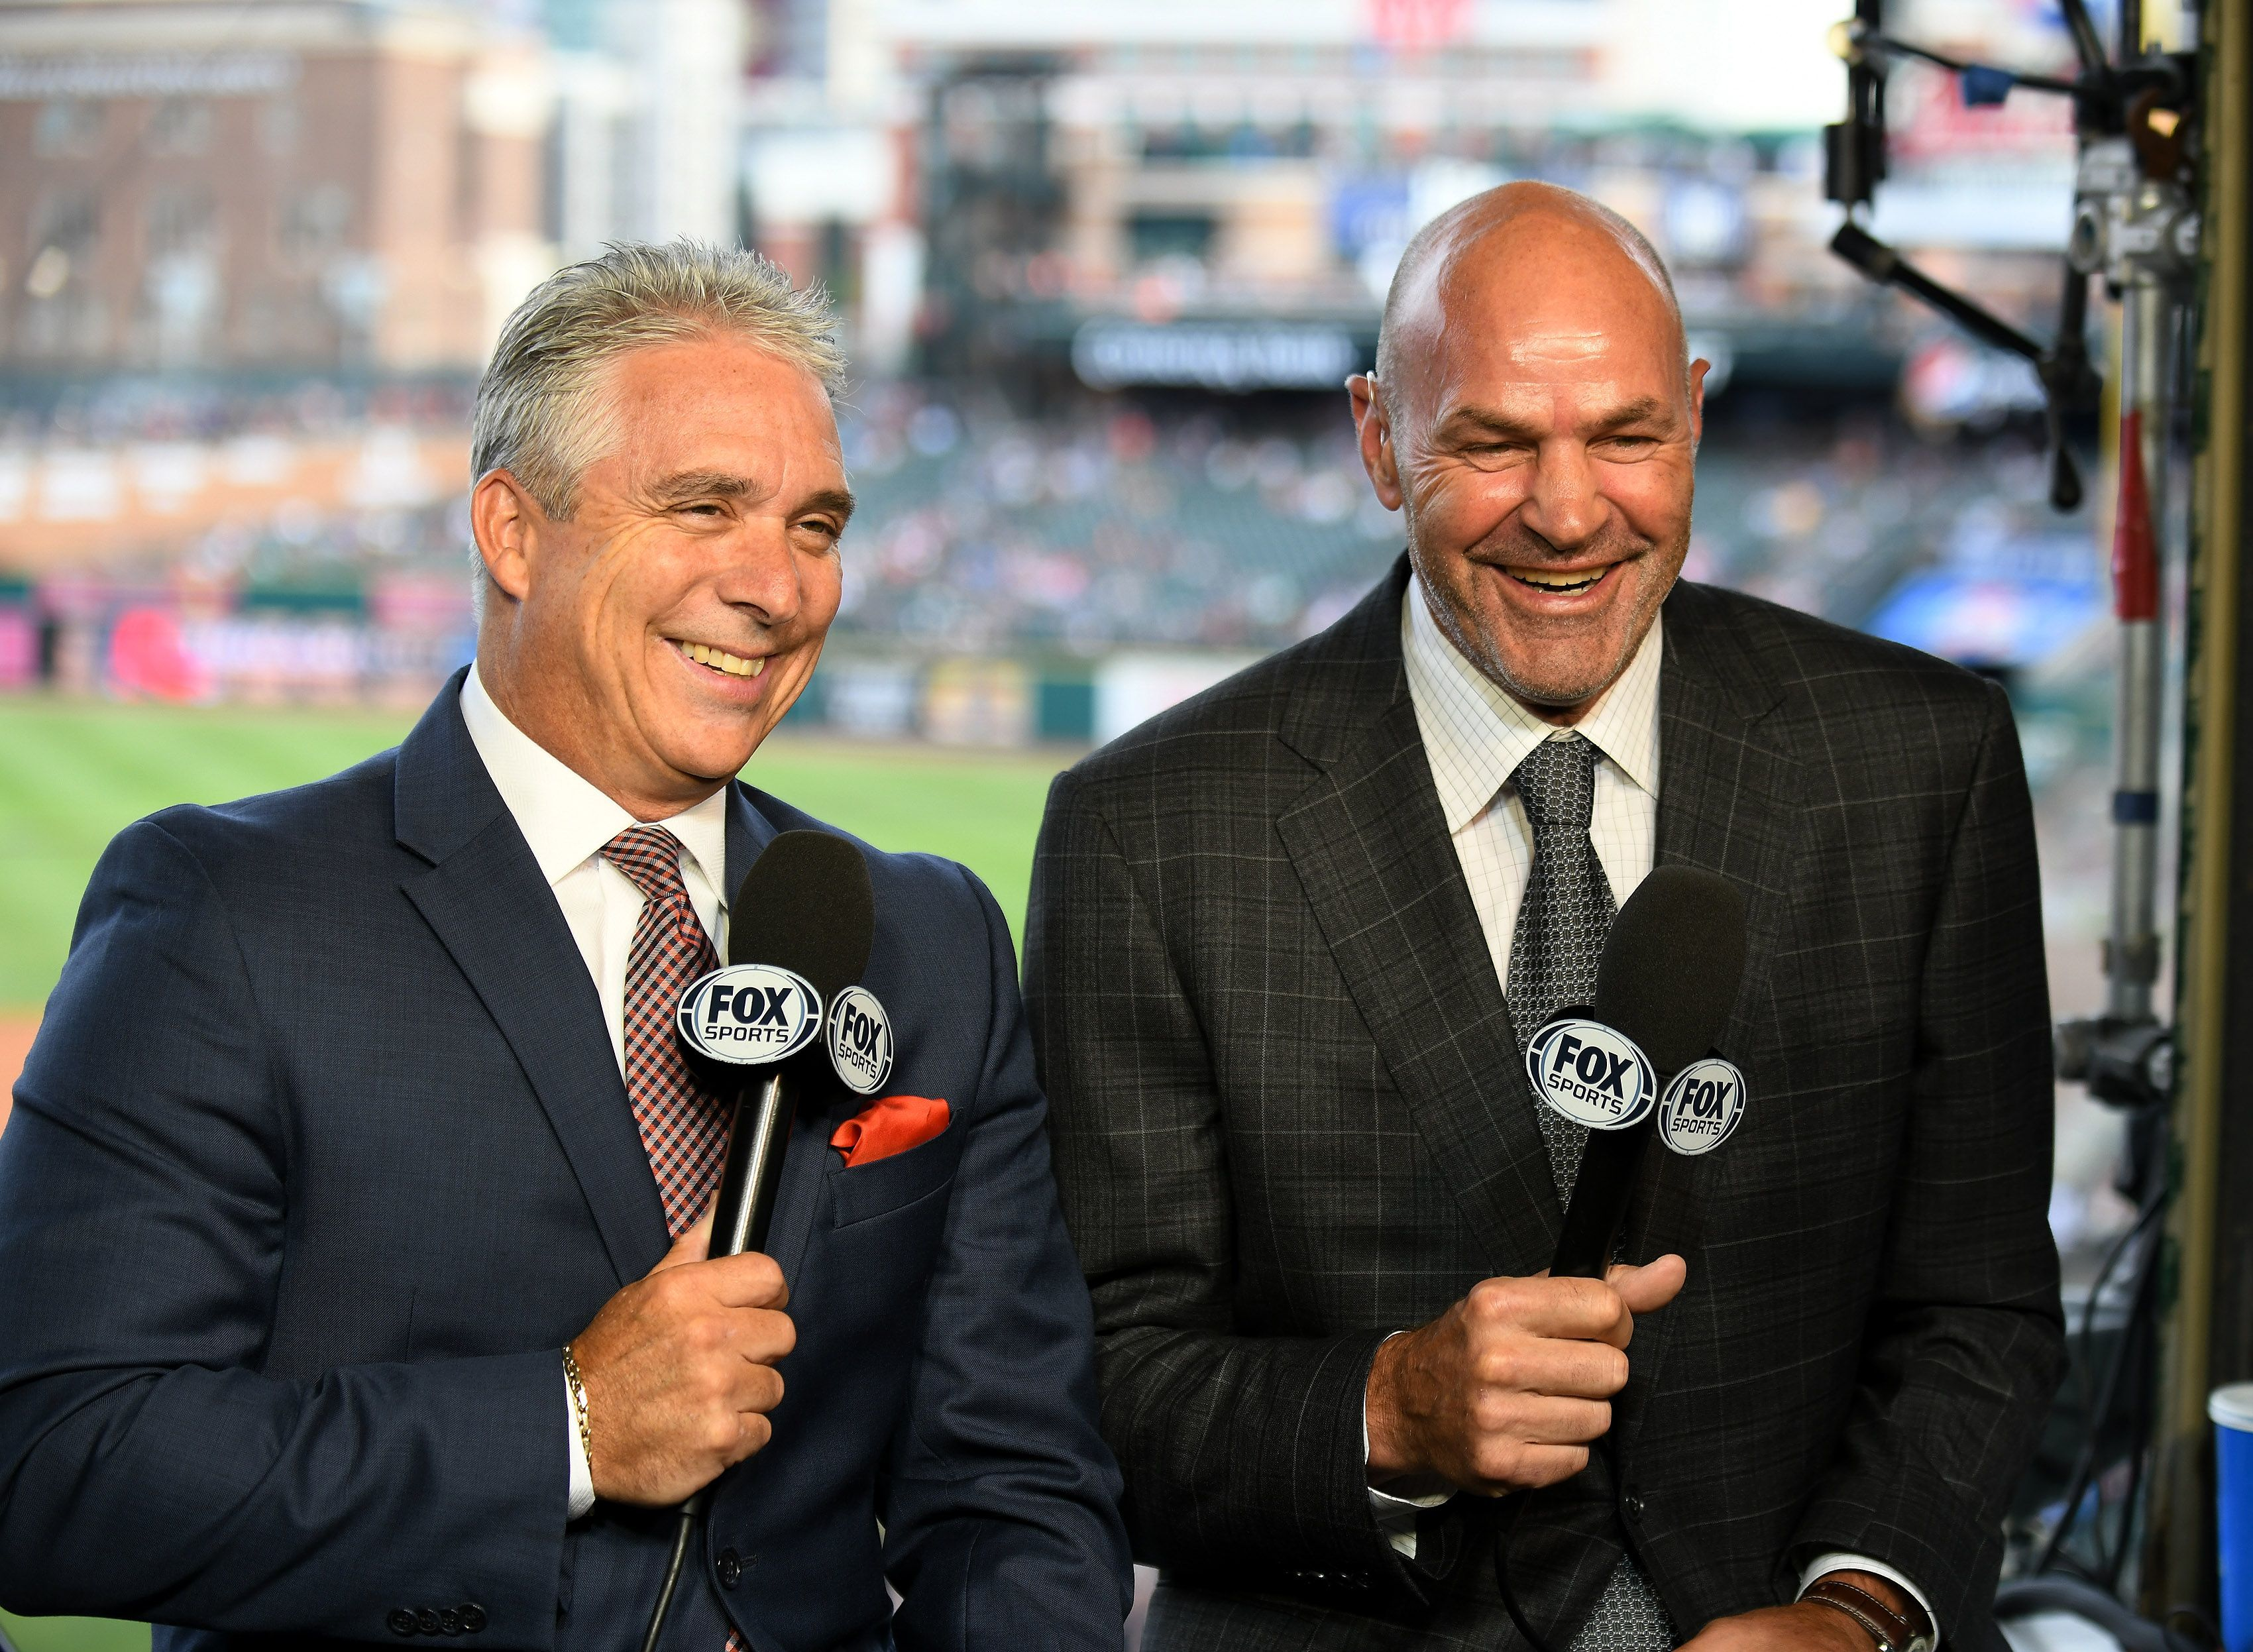 Matt Shepard (left), shown here with former Tigers great Kirk Gibson, will be Fox Sports Detroit's new play-by-play broadcaster for Tigers games.